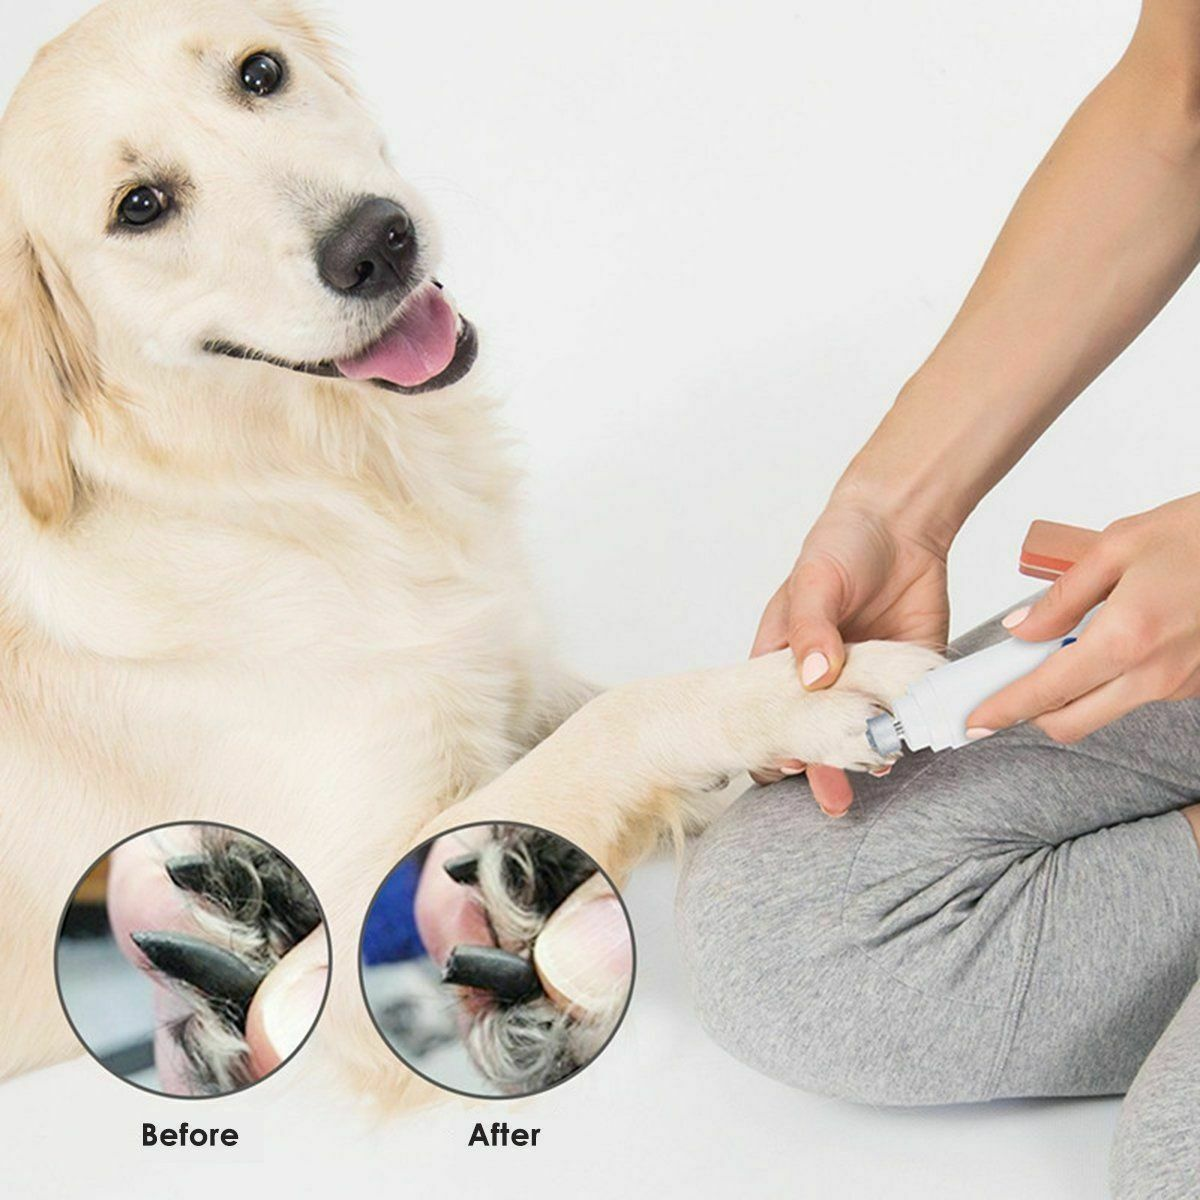 Drop Ship Electric Pet Paws Nail Grinder Claw Grooming Trimmer For Dog Cat Gift Clippers Trimmers Nail Tools Kits Wholesale Dog Nails Cat Nails Grooming Tools